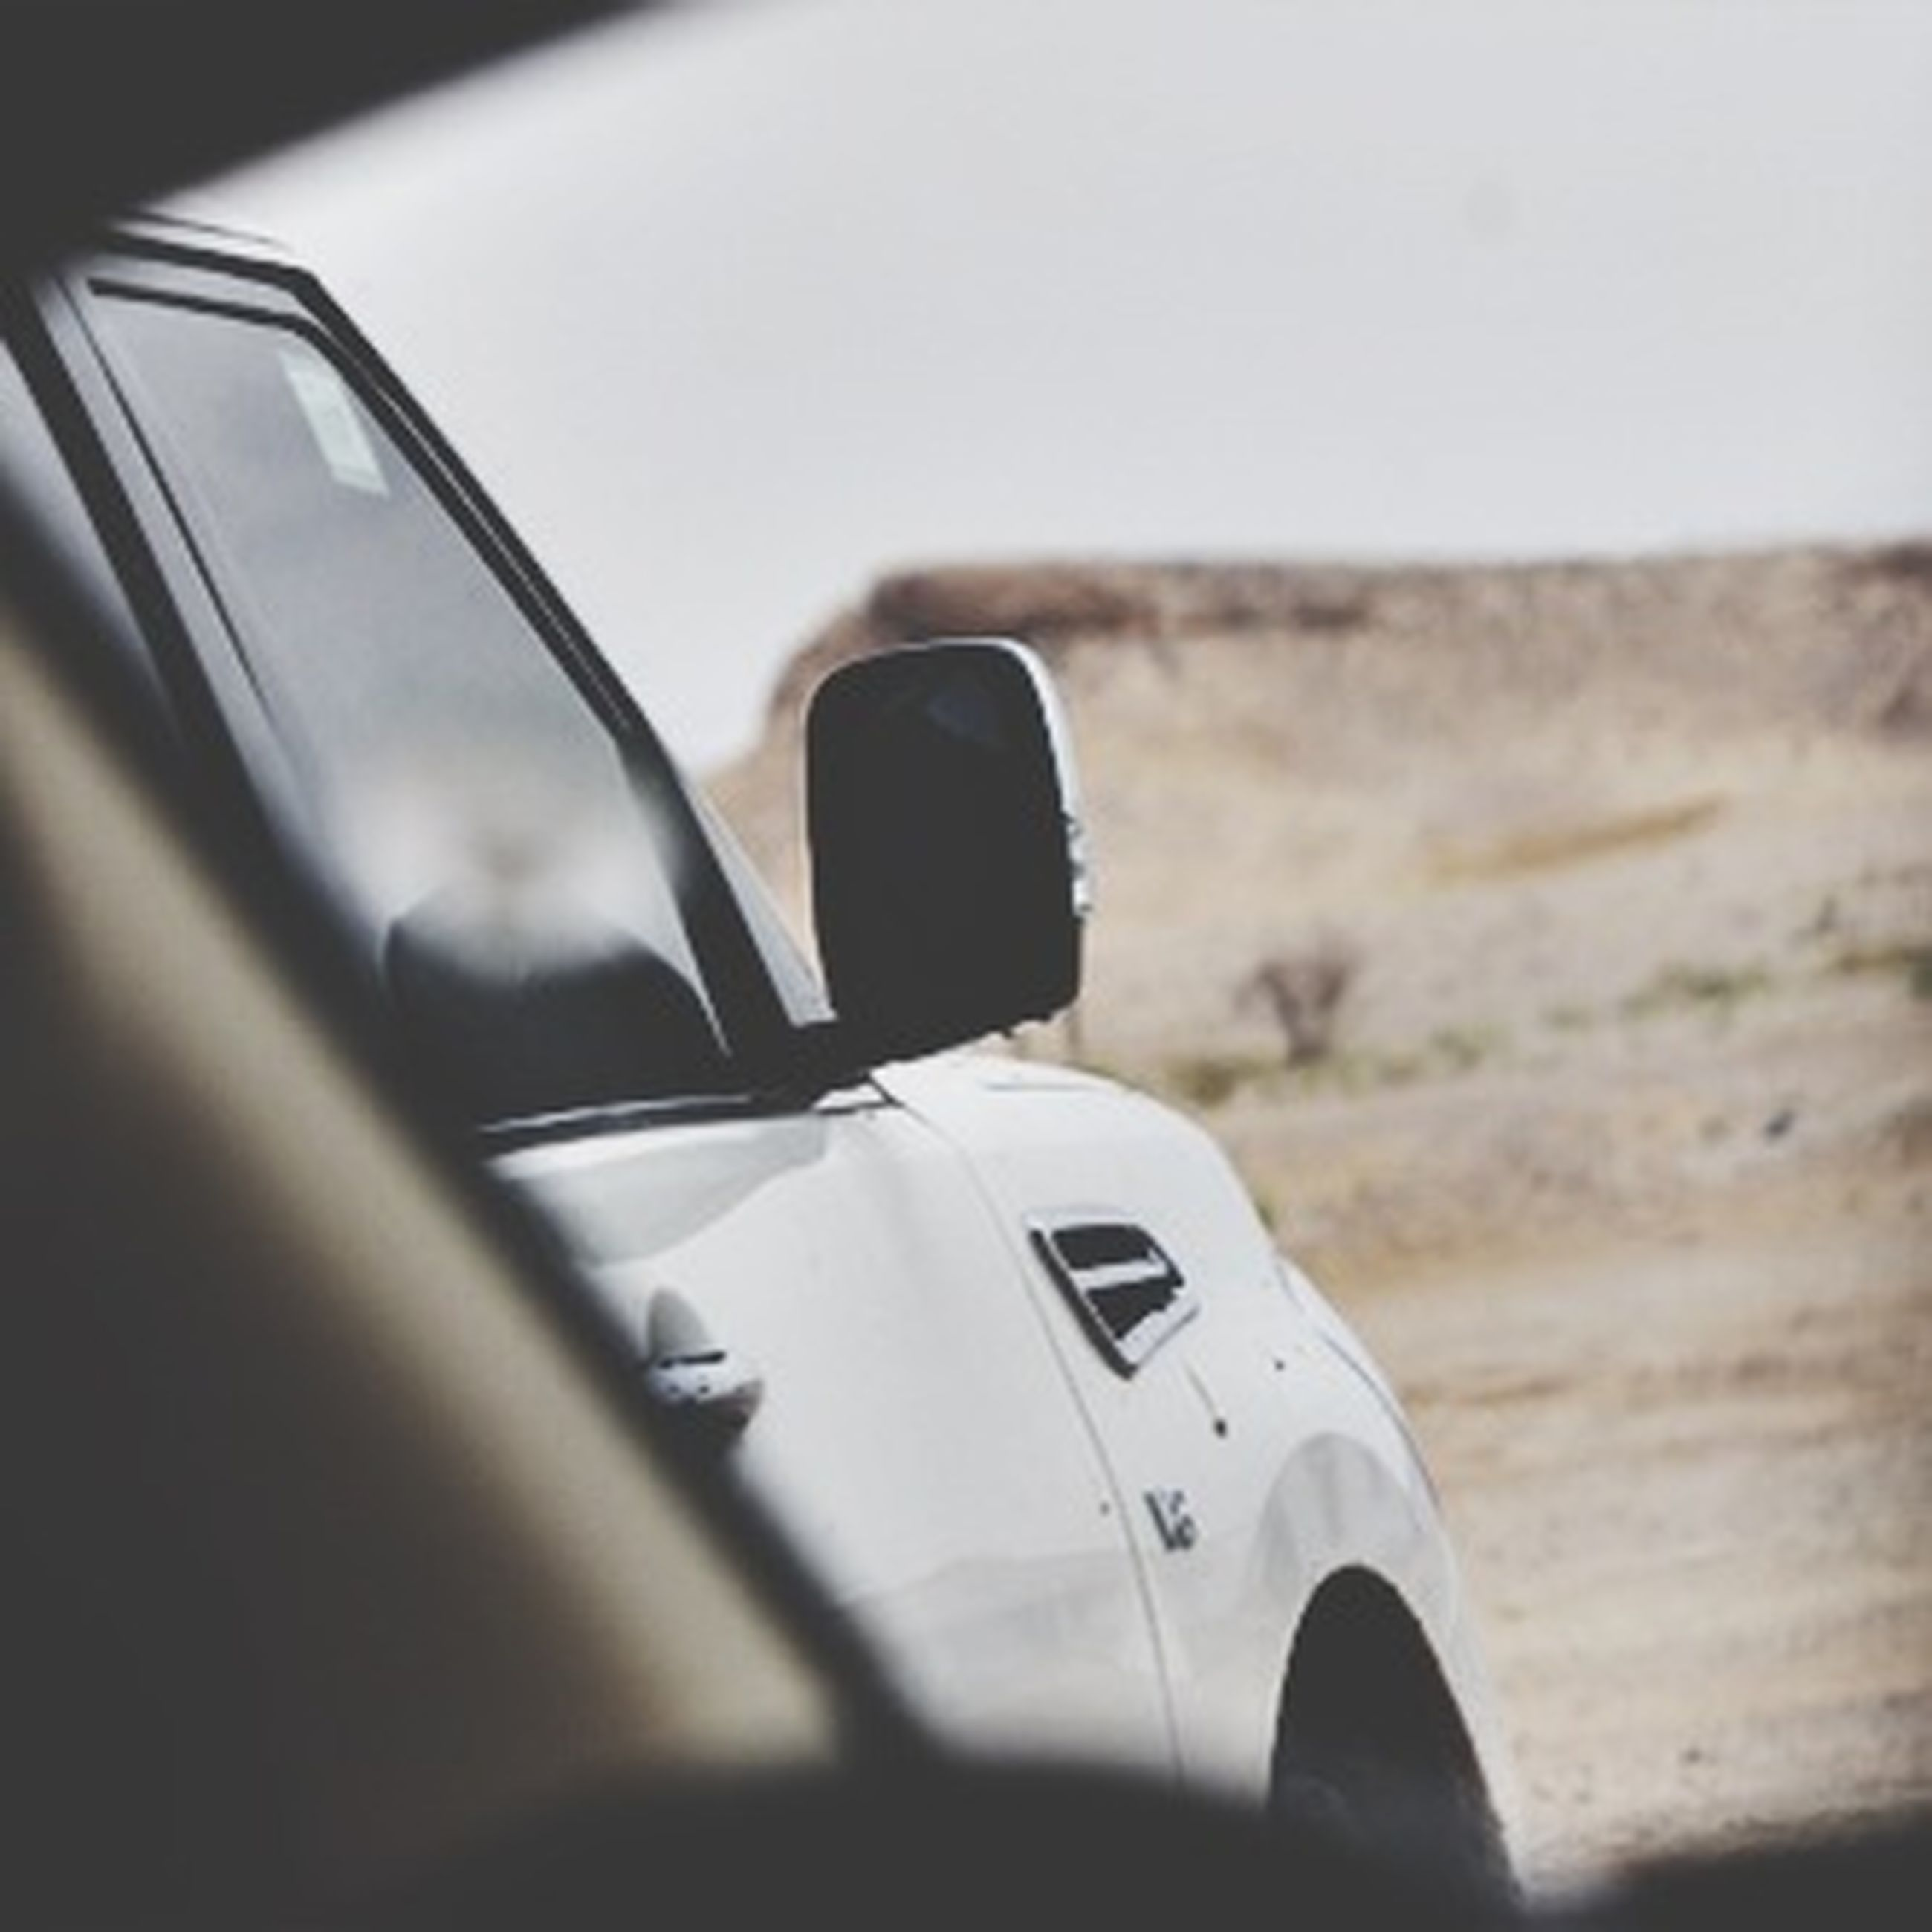 transportation, mode of transport, car, technology, close-up, focus on foreground, land vehicle, photography themes, selective focus, vehicle interior, part of, travel, indoors, car interior, communication, wireless technology, day, camera - photographic equipment, cropped, journey